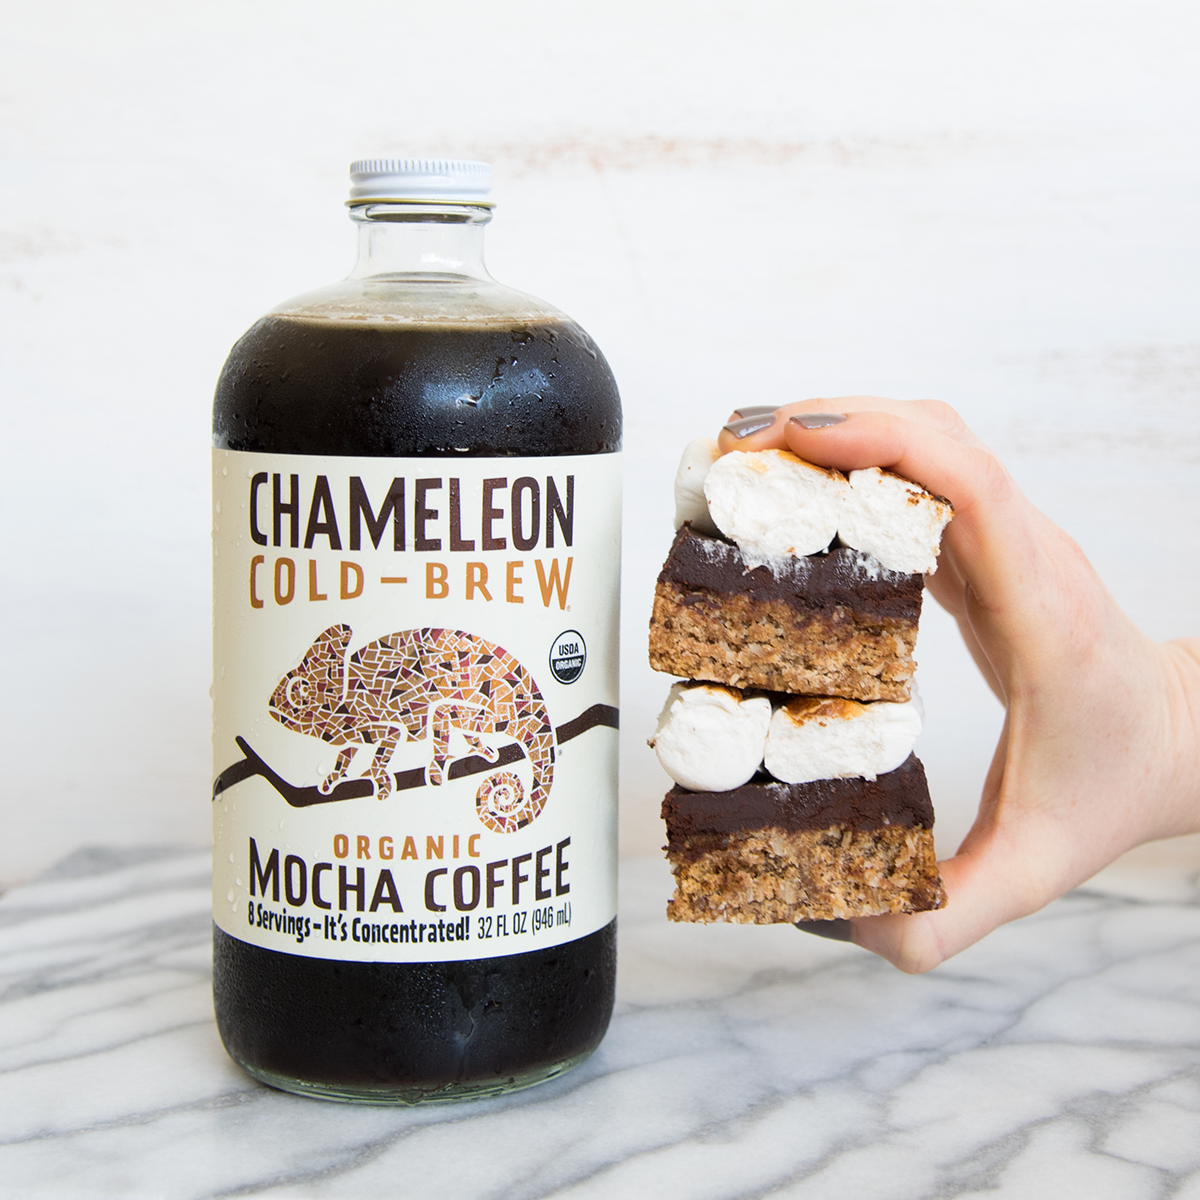 Cold-Brew S'mores Bars